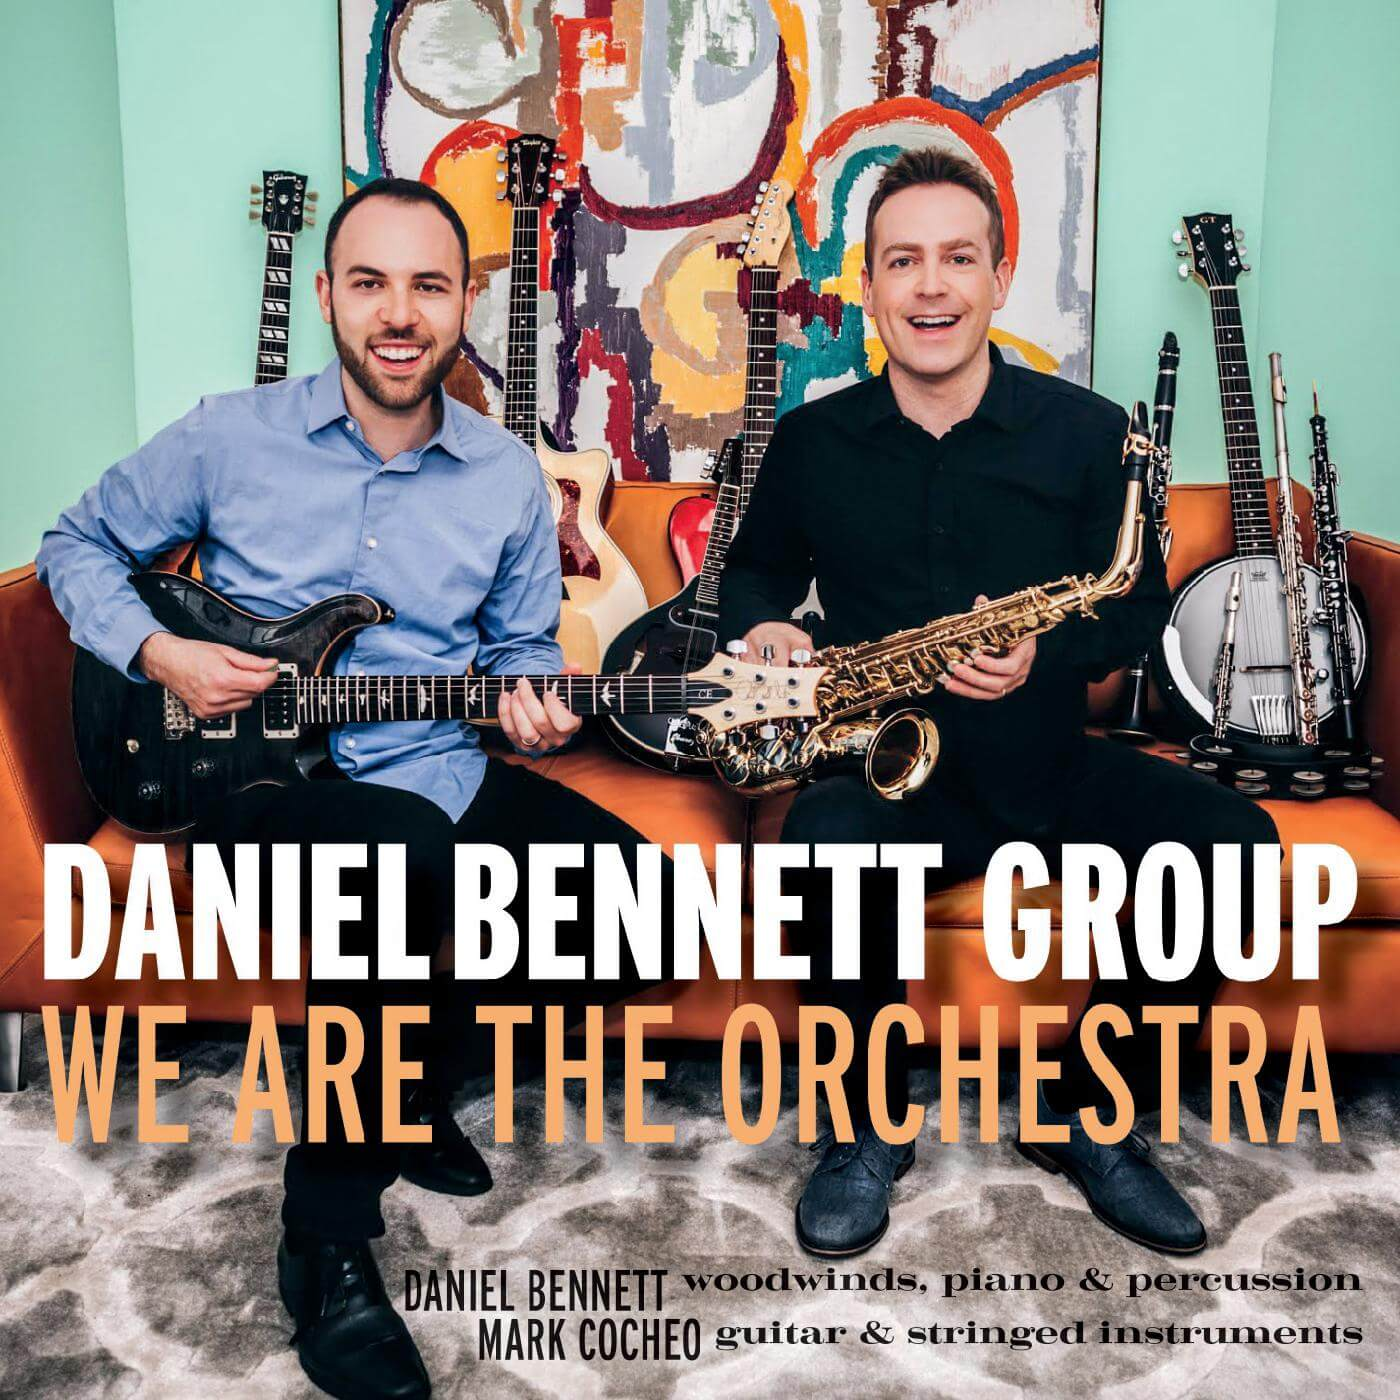 Daniel Bennett Group Release We Are The Orchestra